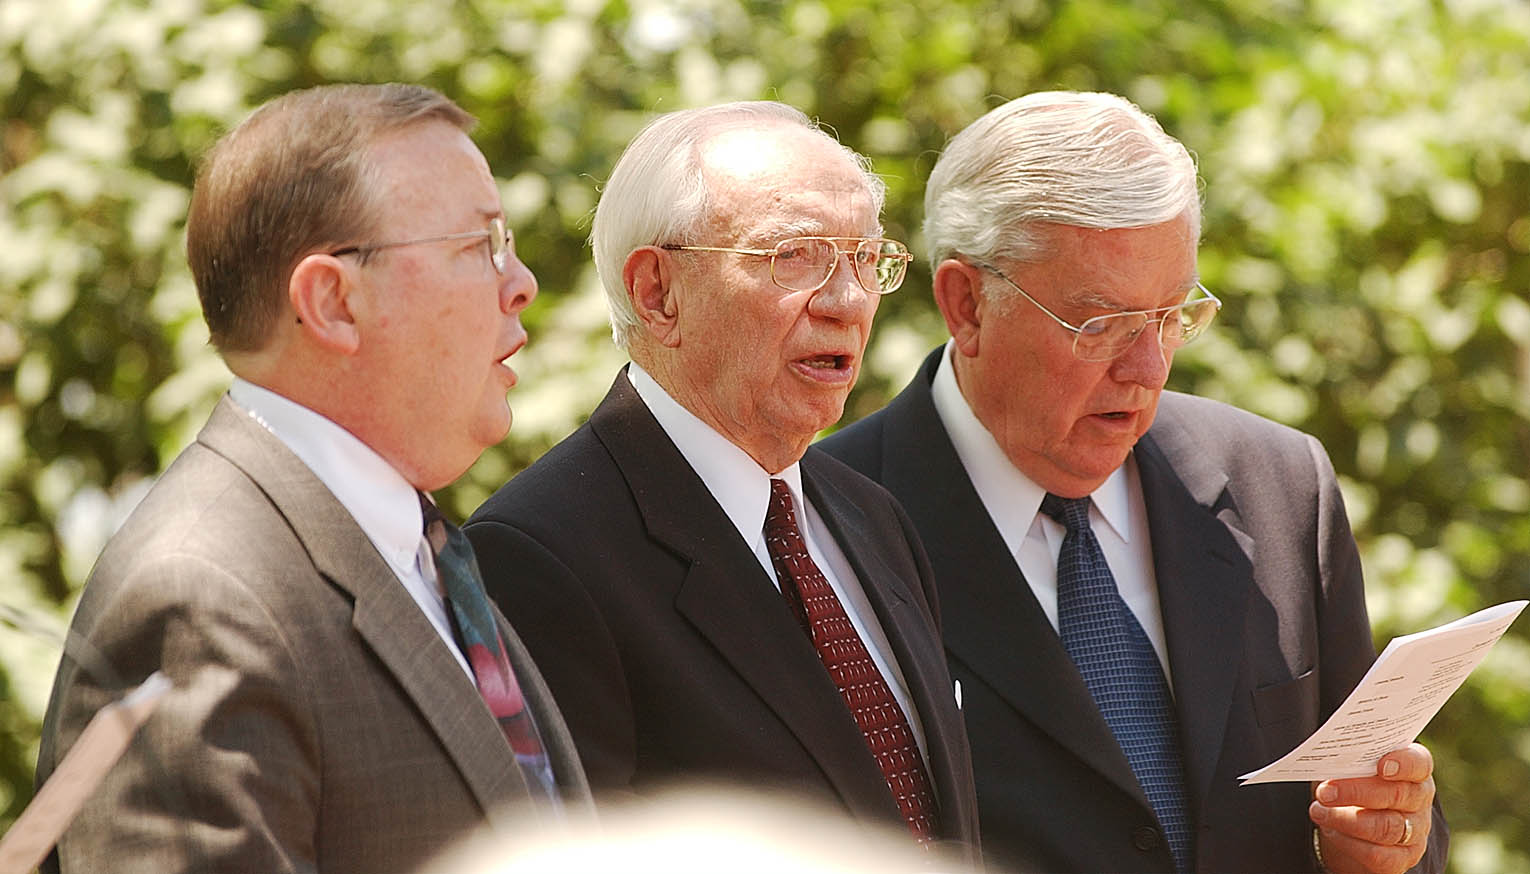 Community of Christ Pres Grant McMurray, President Gordon B. Hinckley, and Elder President M. Russell Ballard sing during the Joseph and Hyrum Smith commemoration service June 27th, 2002.